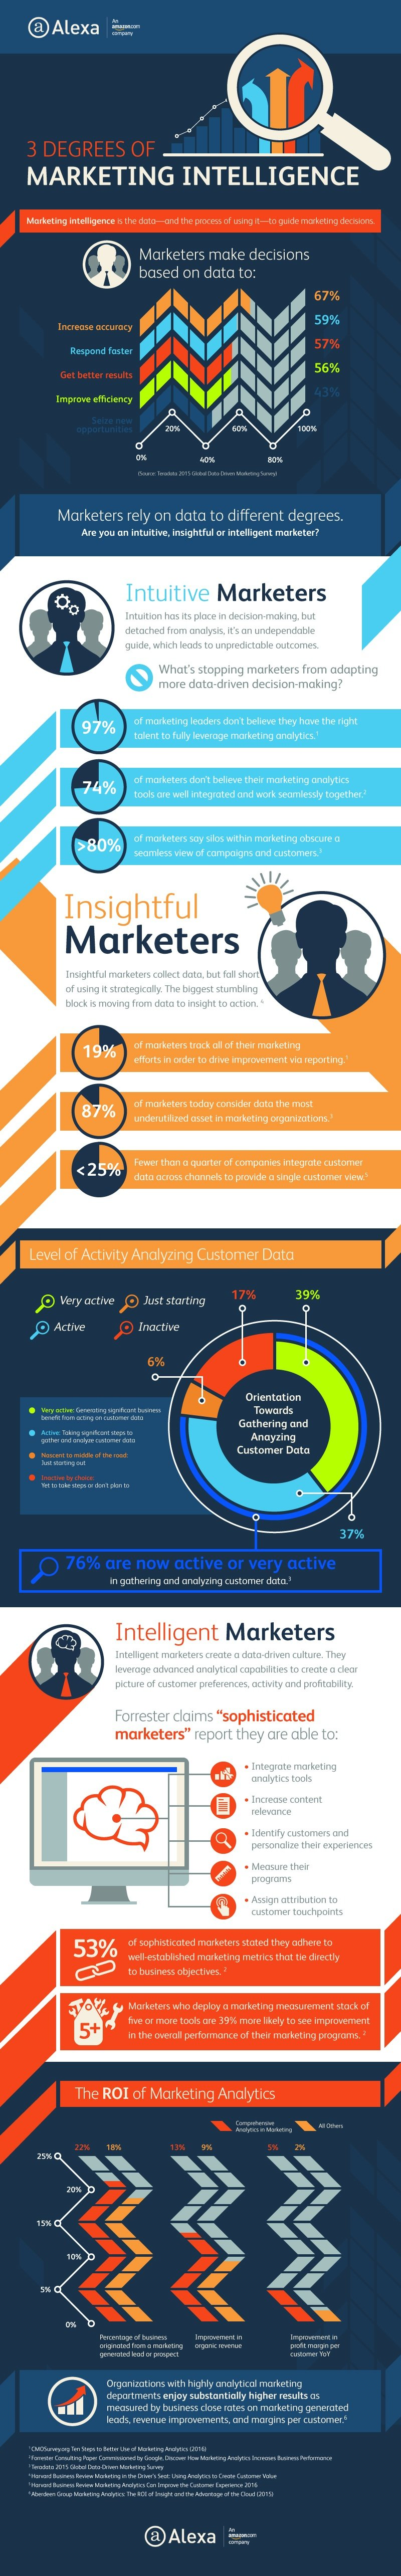 Intelligent Marketer Infographic